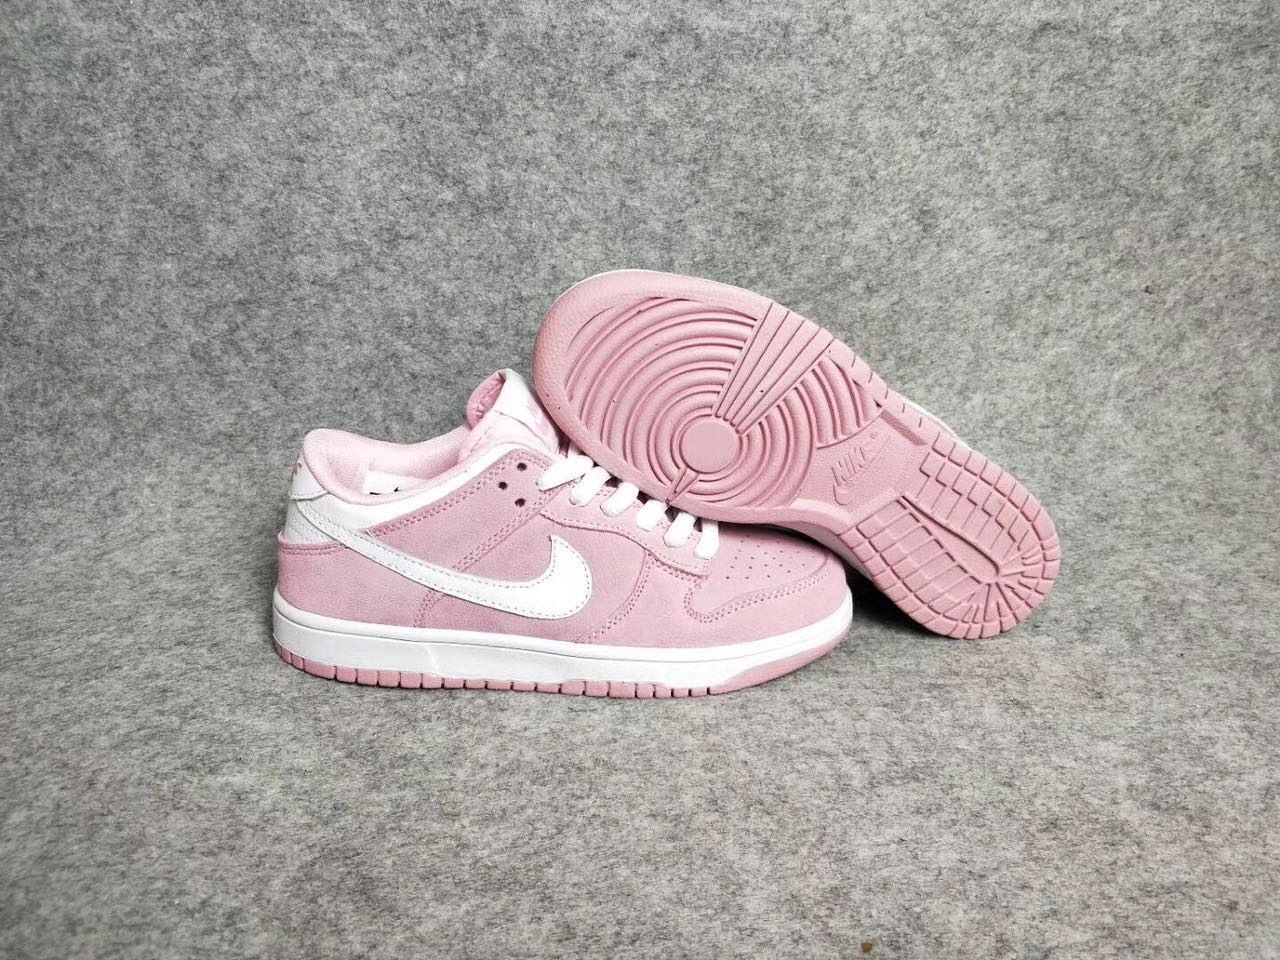 quality design 4f895 a2ac9 Nike Dunk Low GS Pink White Shoes